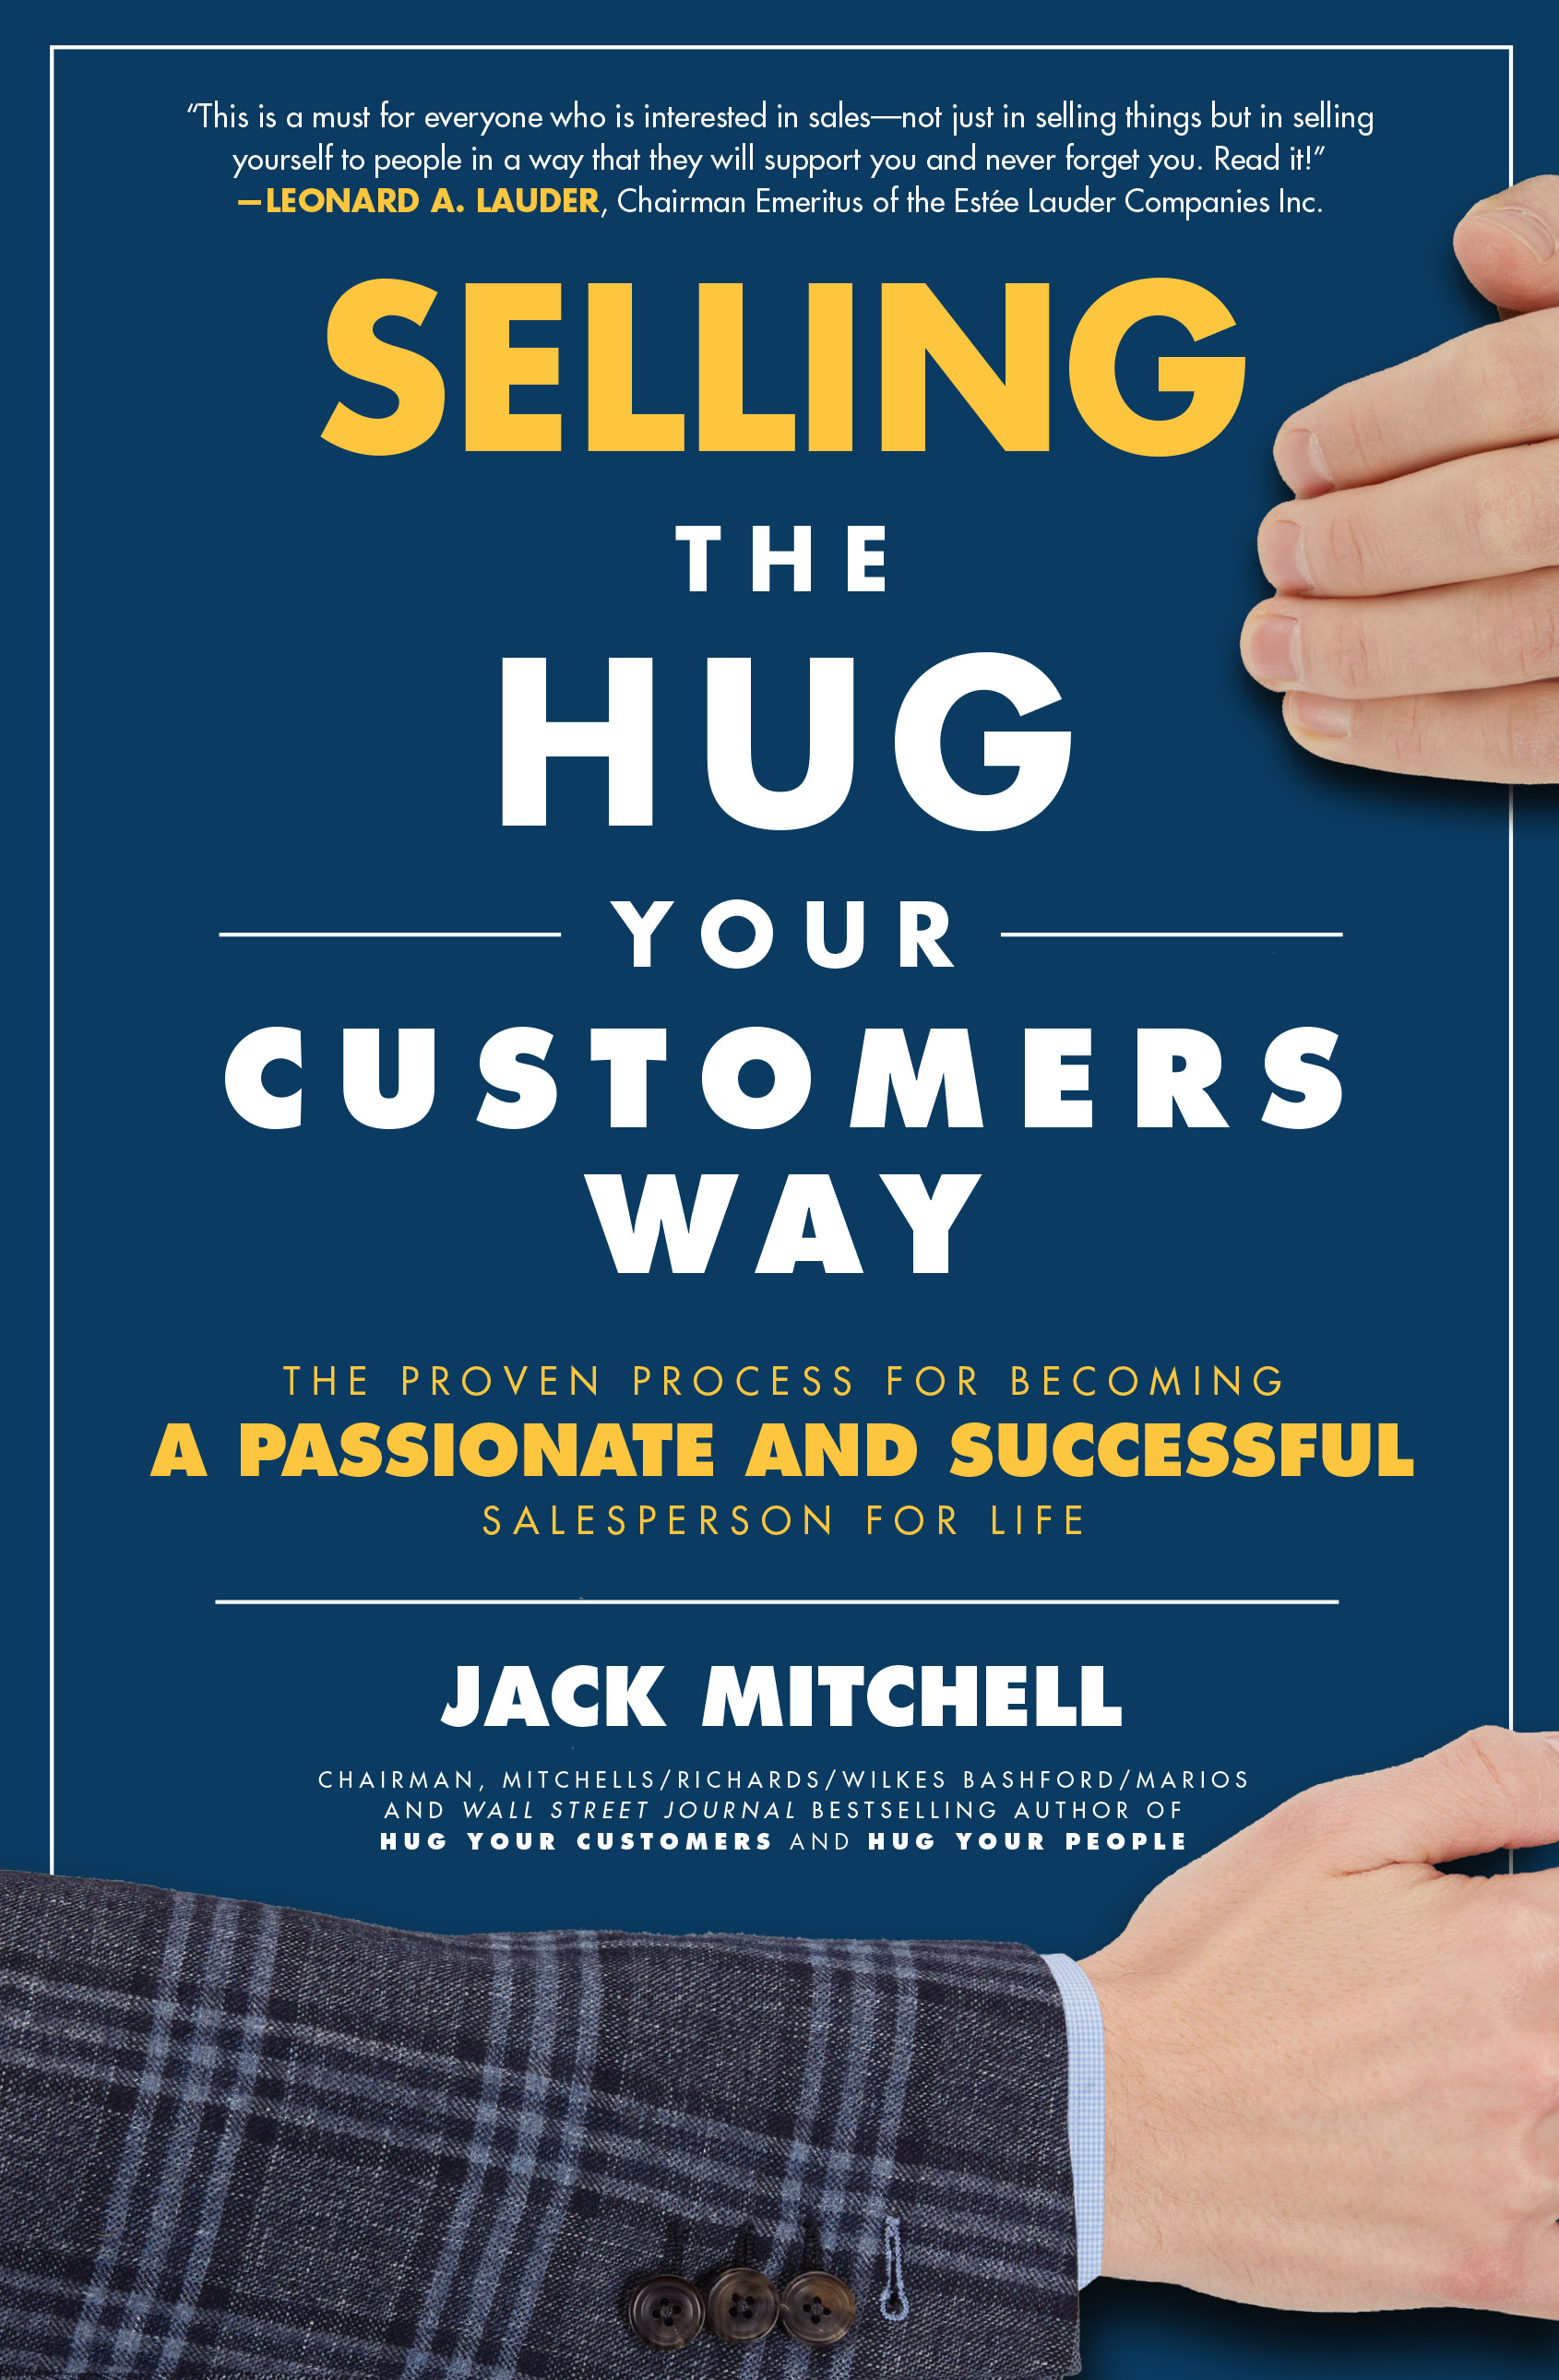 The latest book from retailer Jack Mitchell is out June 8.